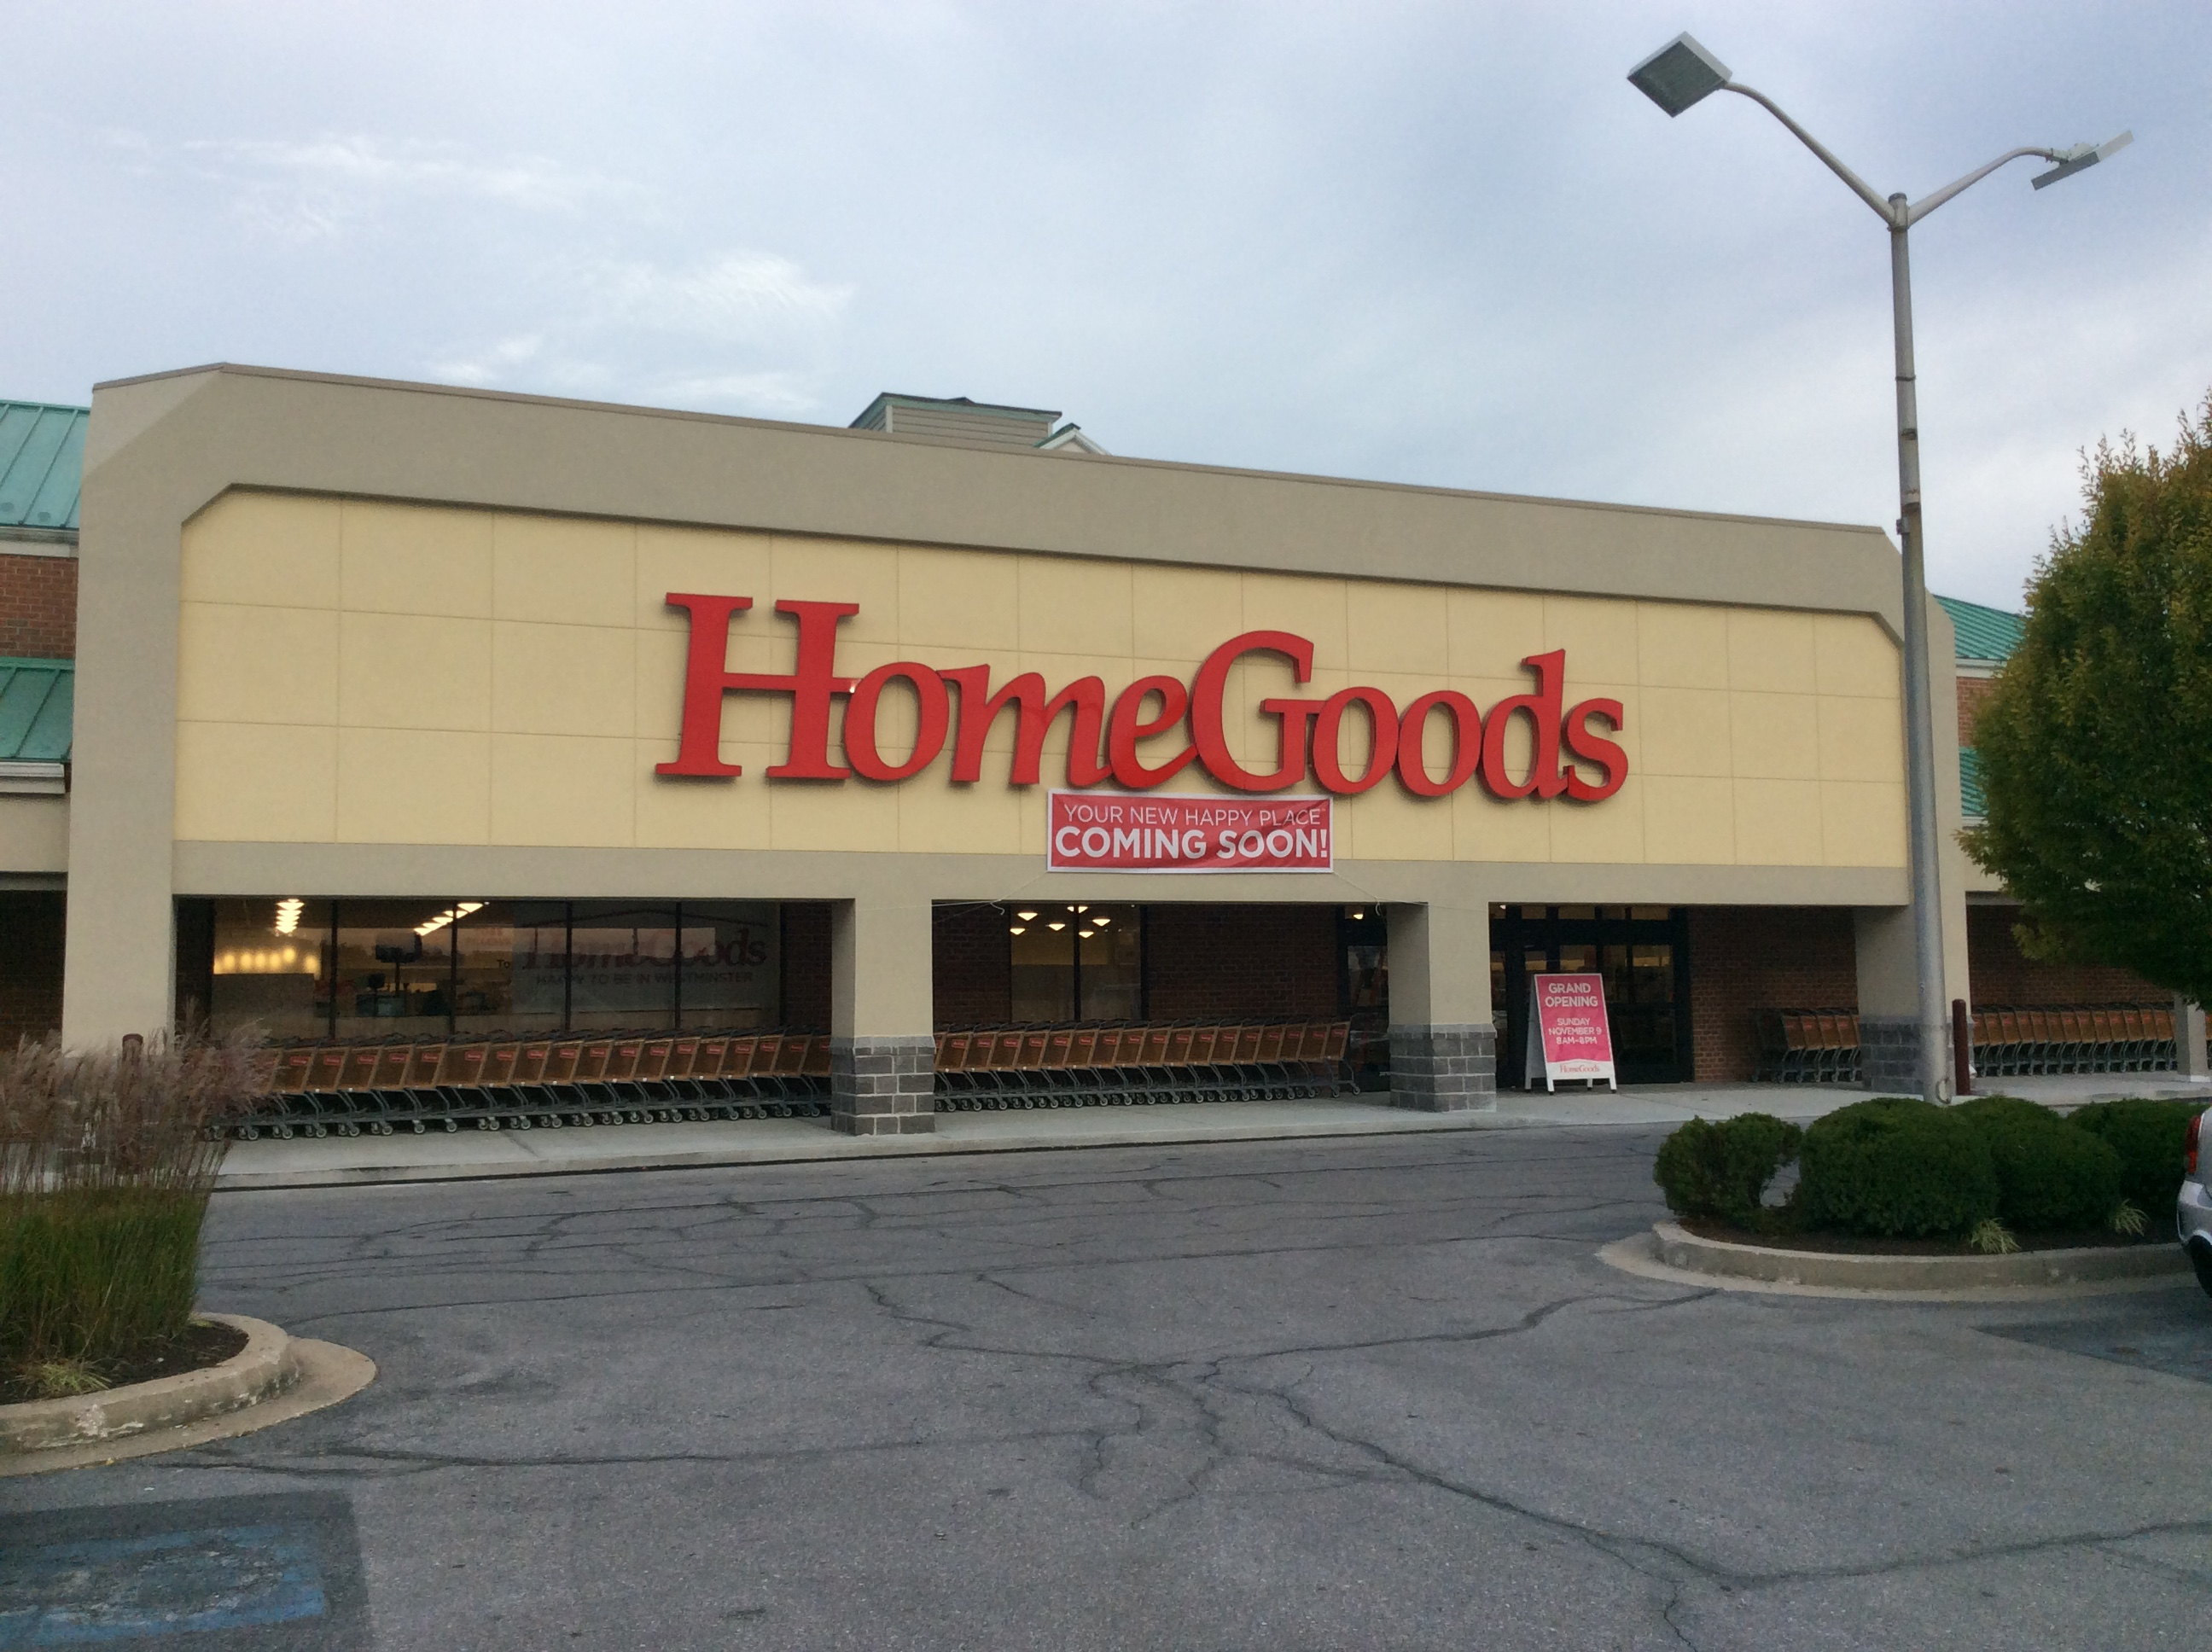 Home Goods   Westminster  MD. HomeGoods Westminster MD   Zahler Construction